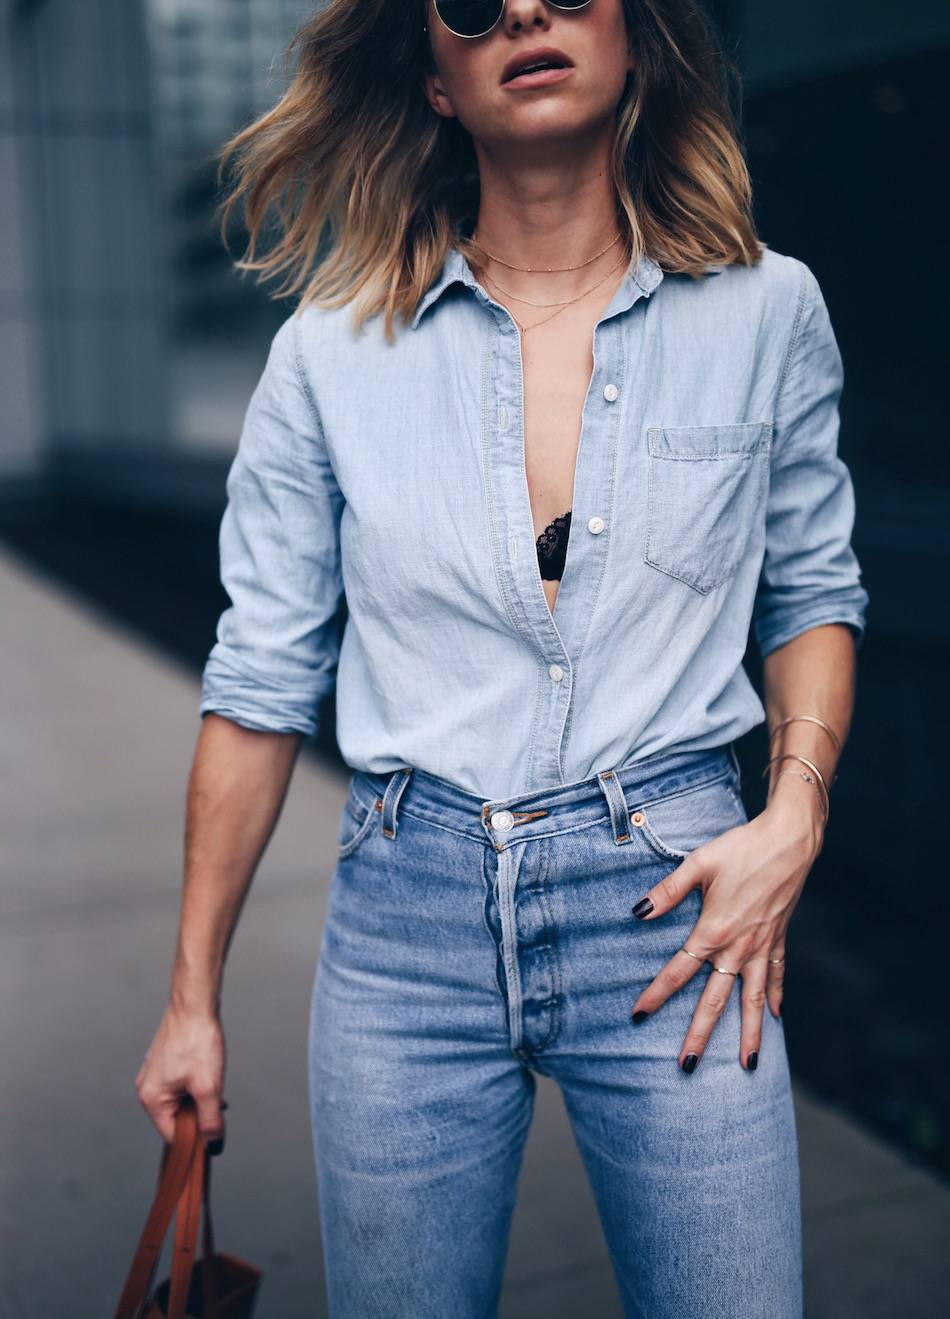 madewell chambray shirt with black lace bra